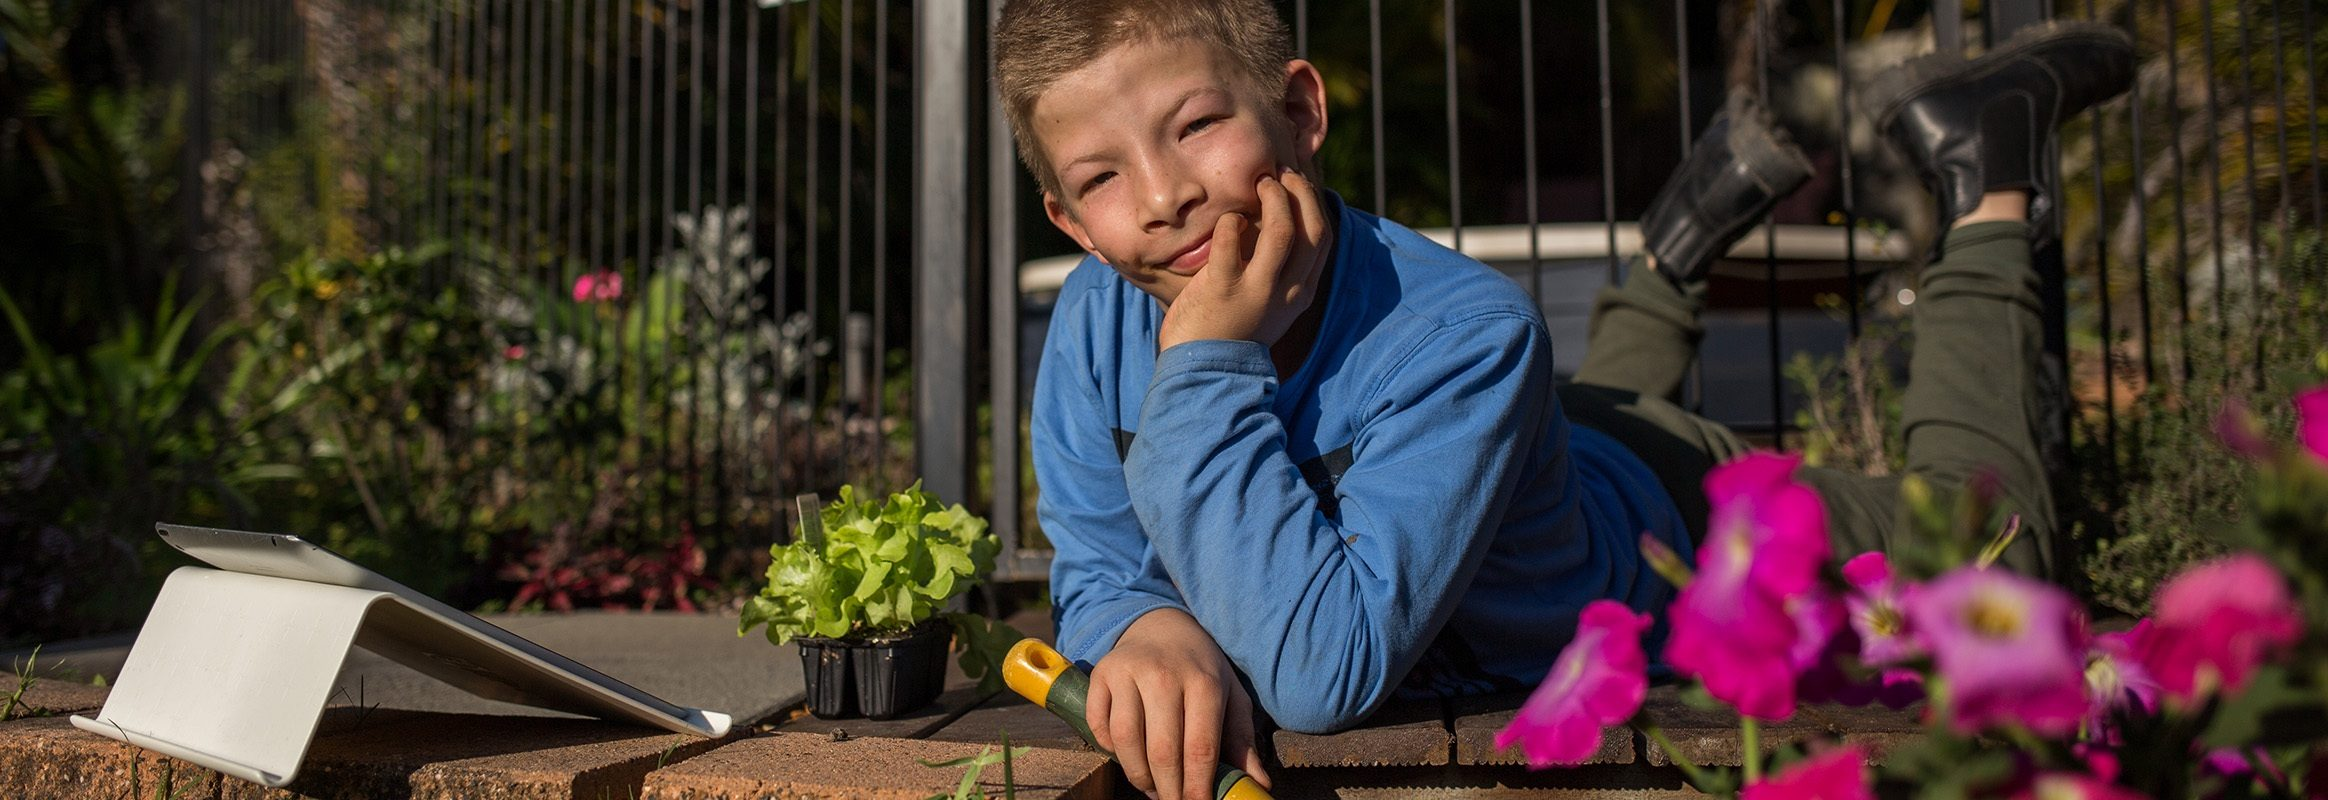 Boy in garden contemplating